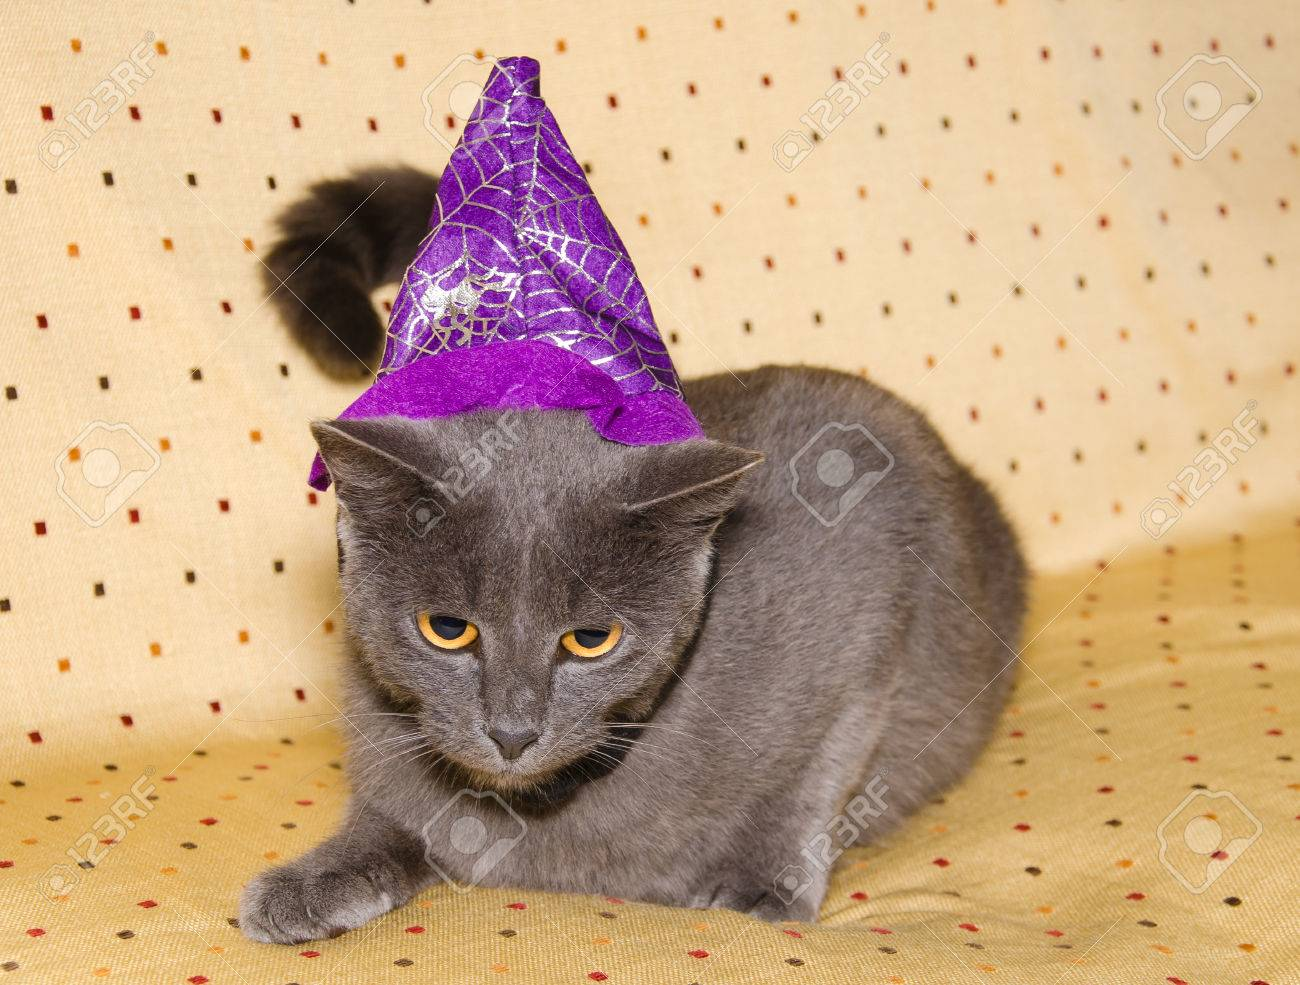 Chartreux cat in costume for a masquerade. Halloween image. Stock Photo - 46724545 & Chartreux Cat In Costume For A Masquerade. Halloween Image. Stock ...